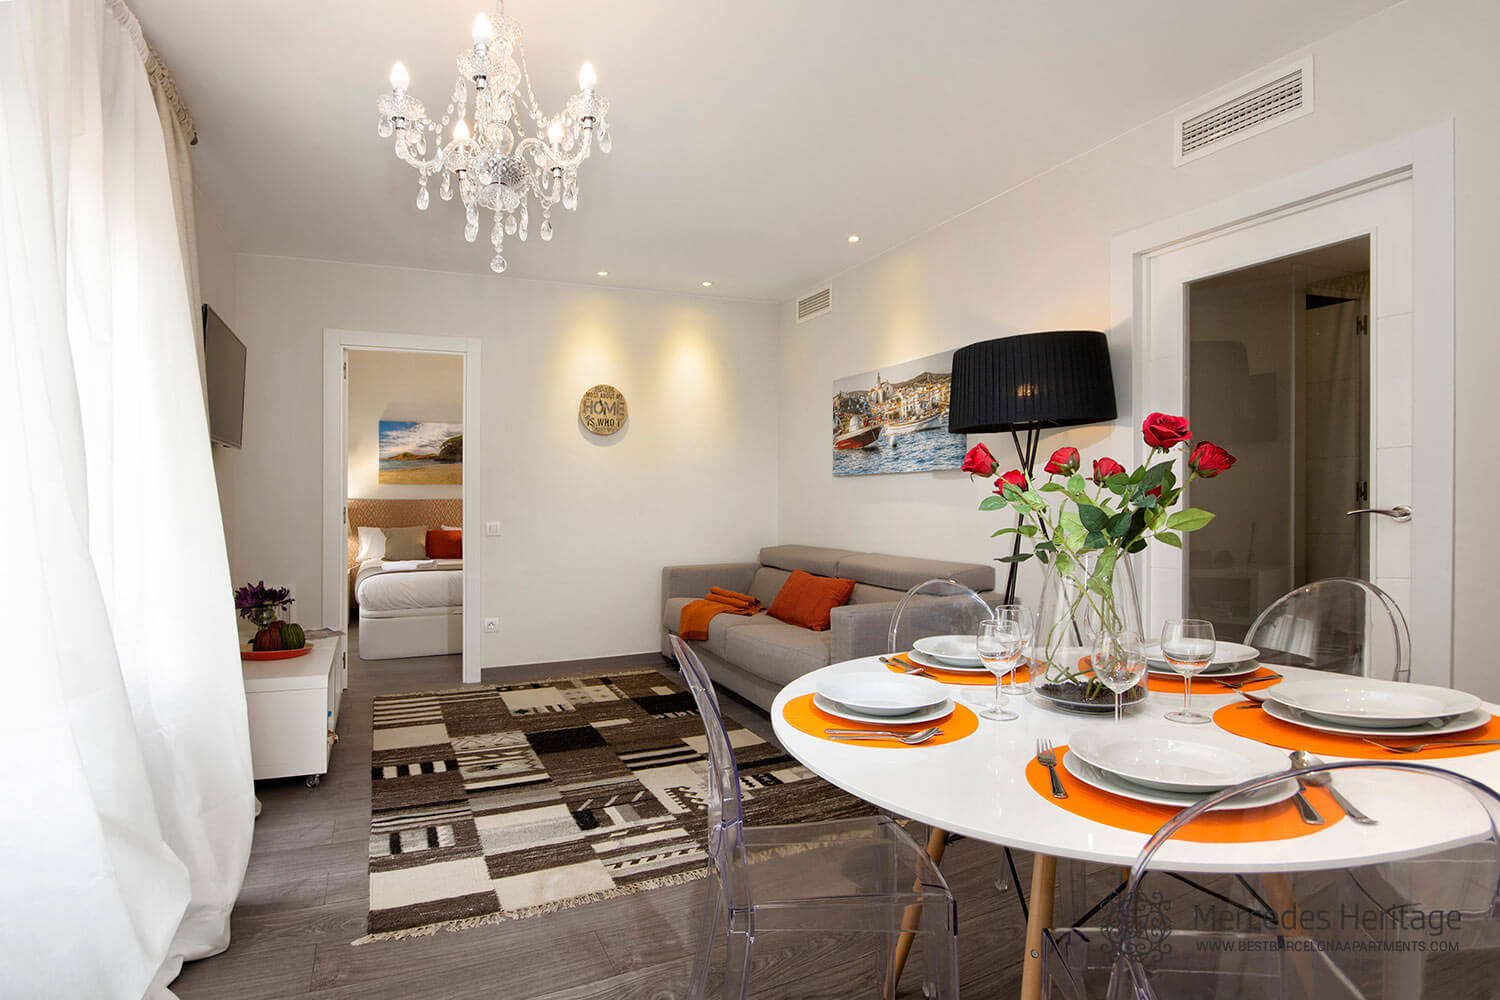 4 Bedrooms For 6 Pers Apartments In Barcelona Mercedes